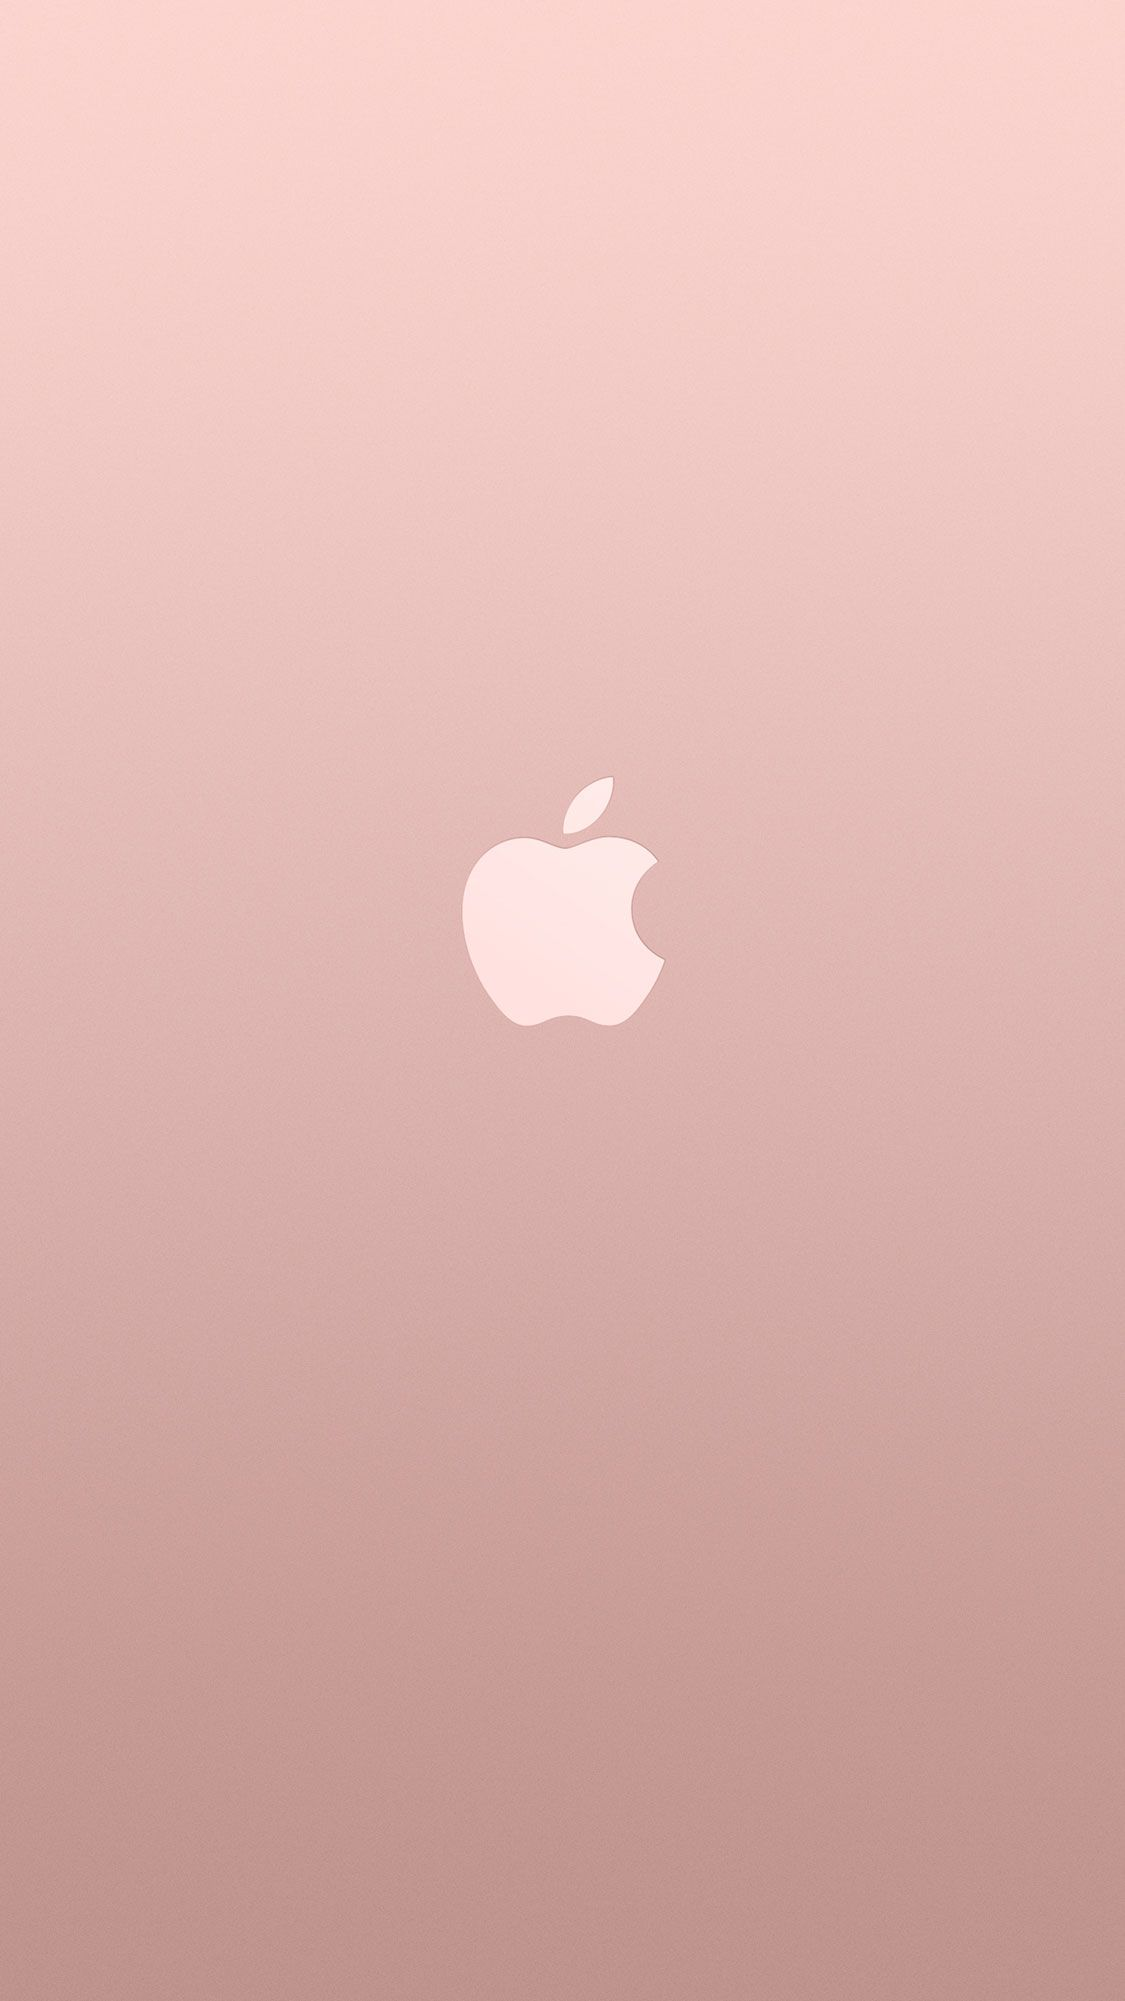 20 New iPhone 6 & 6S Wallpapers & Backgrounds in HD Quality